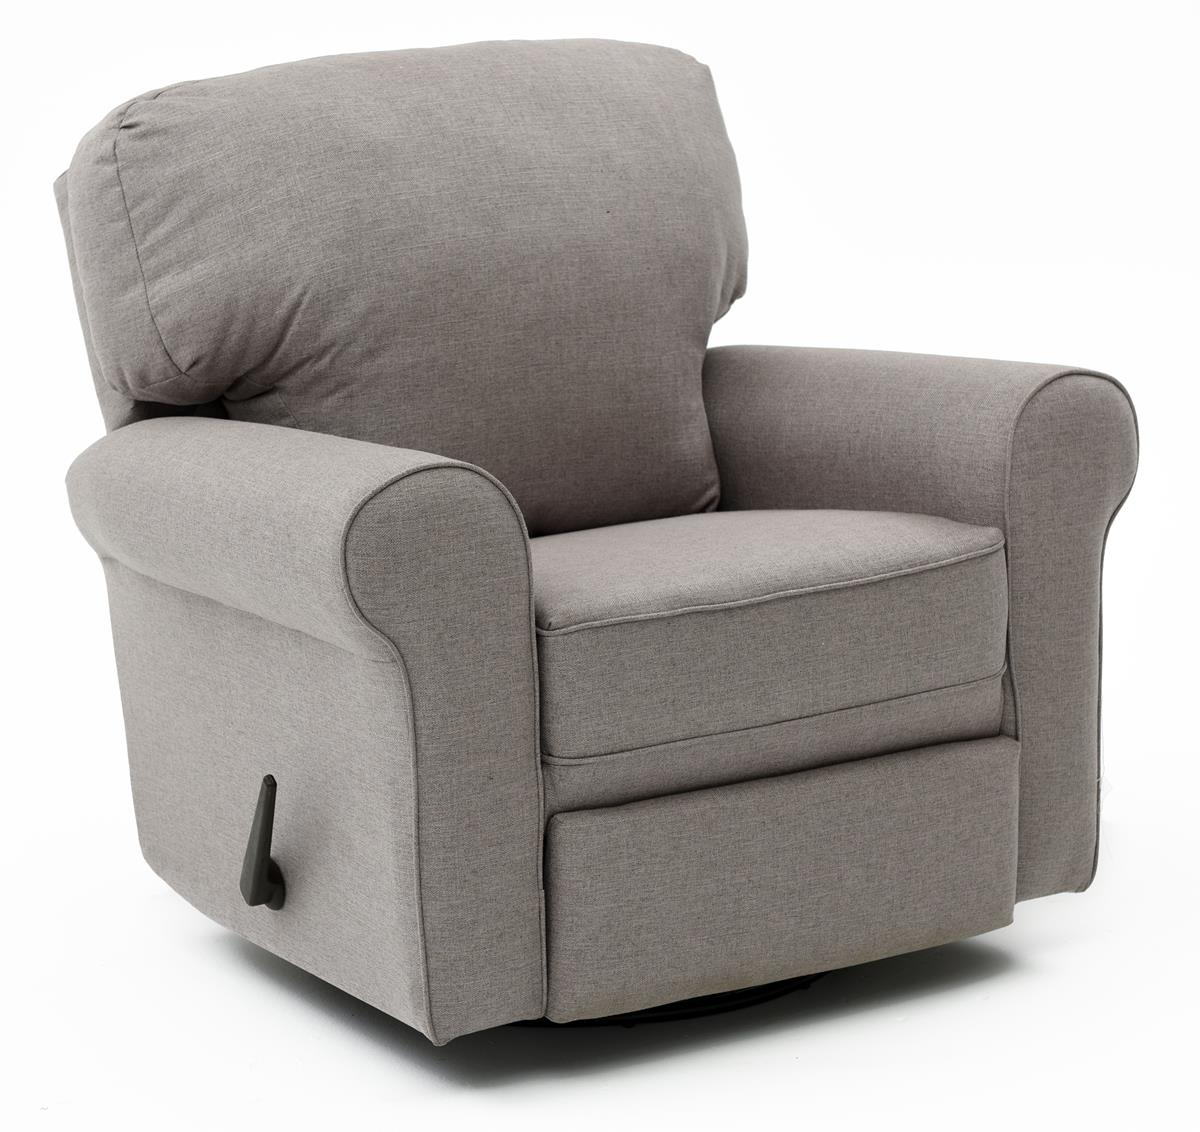 Leather Swivel Rocker Recliner And Its Benefits | In Decker Ii Fabric Swivel Rocker Recliners (Image 13 of 25)